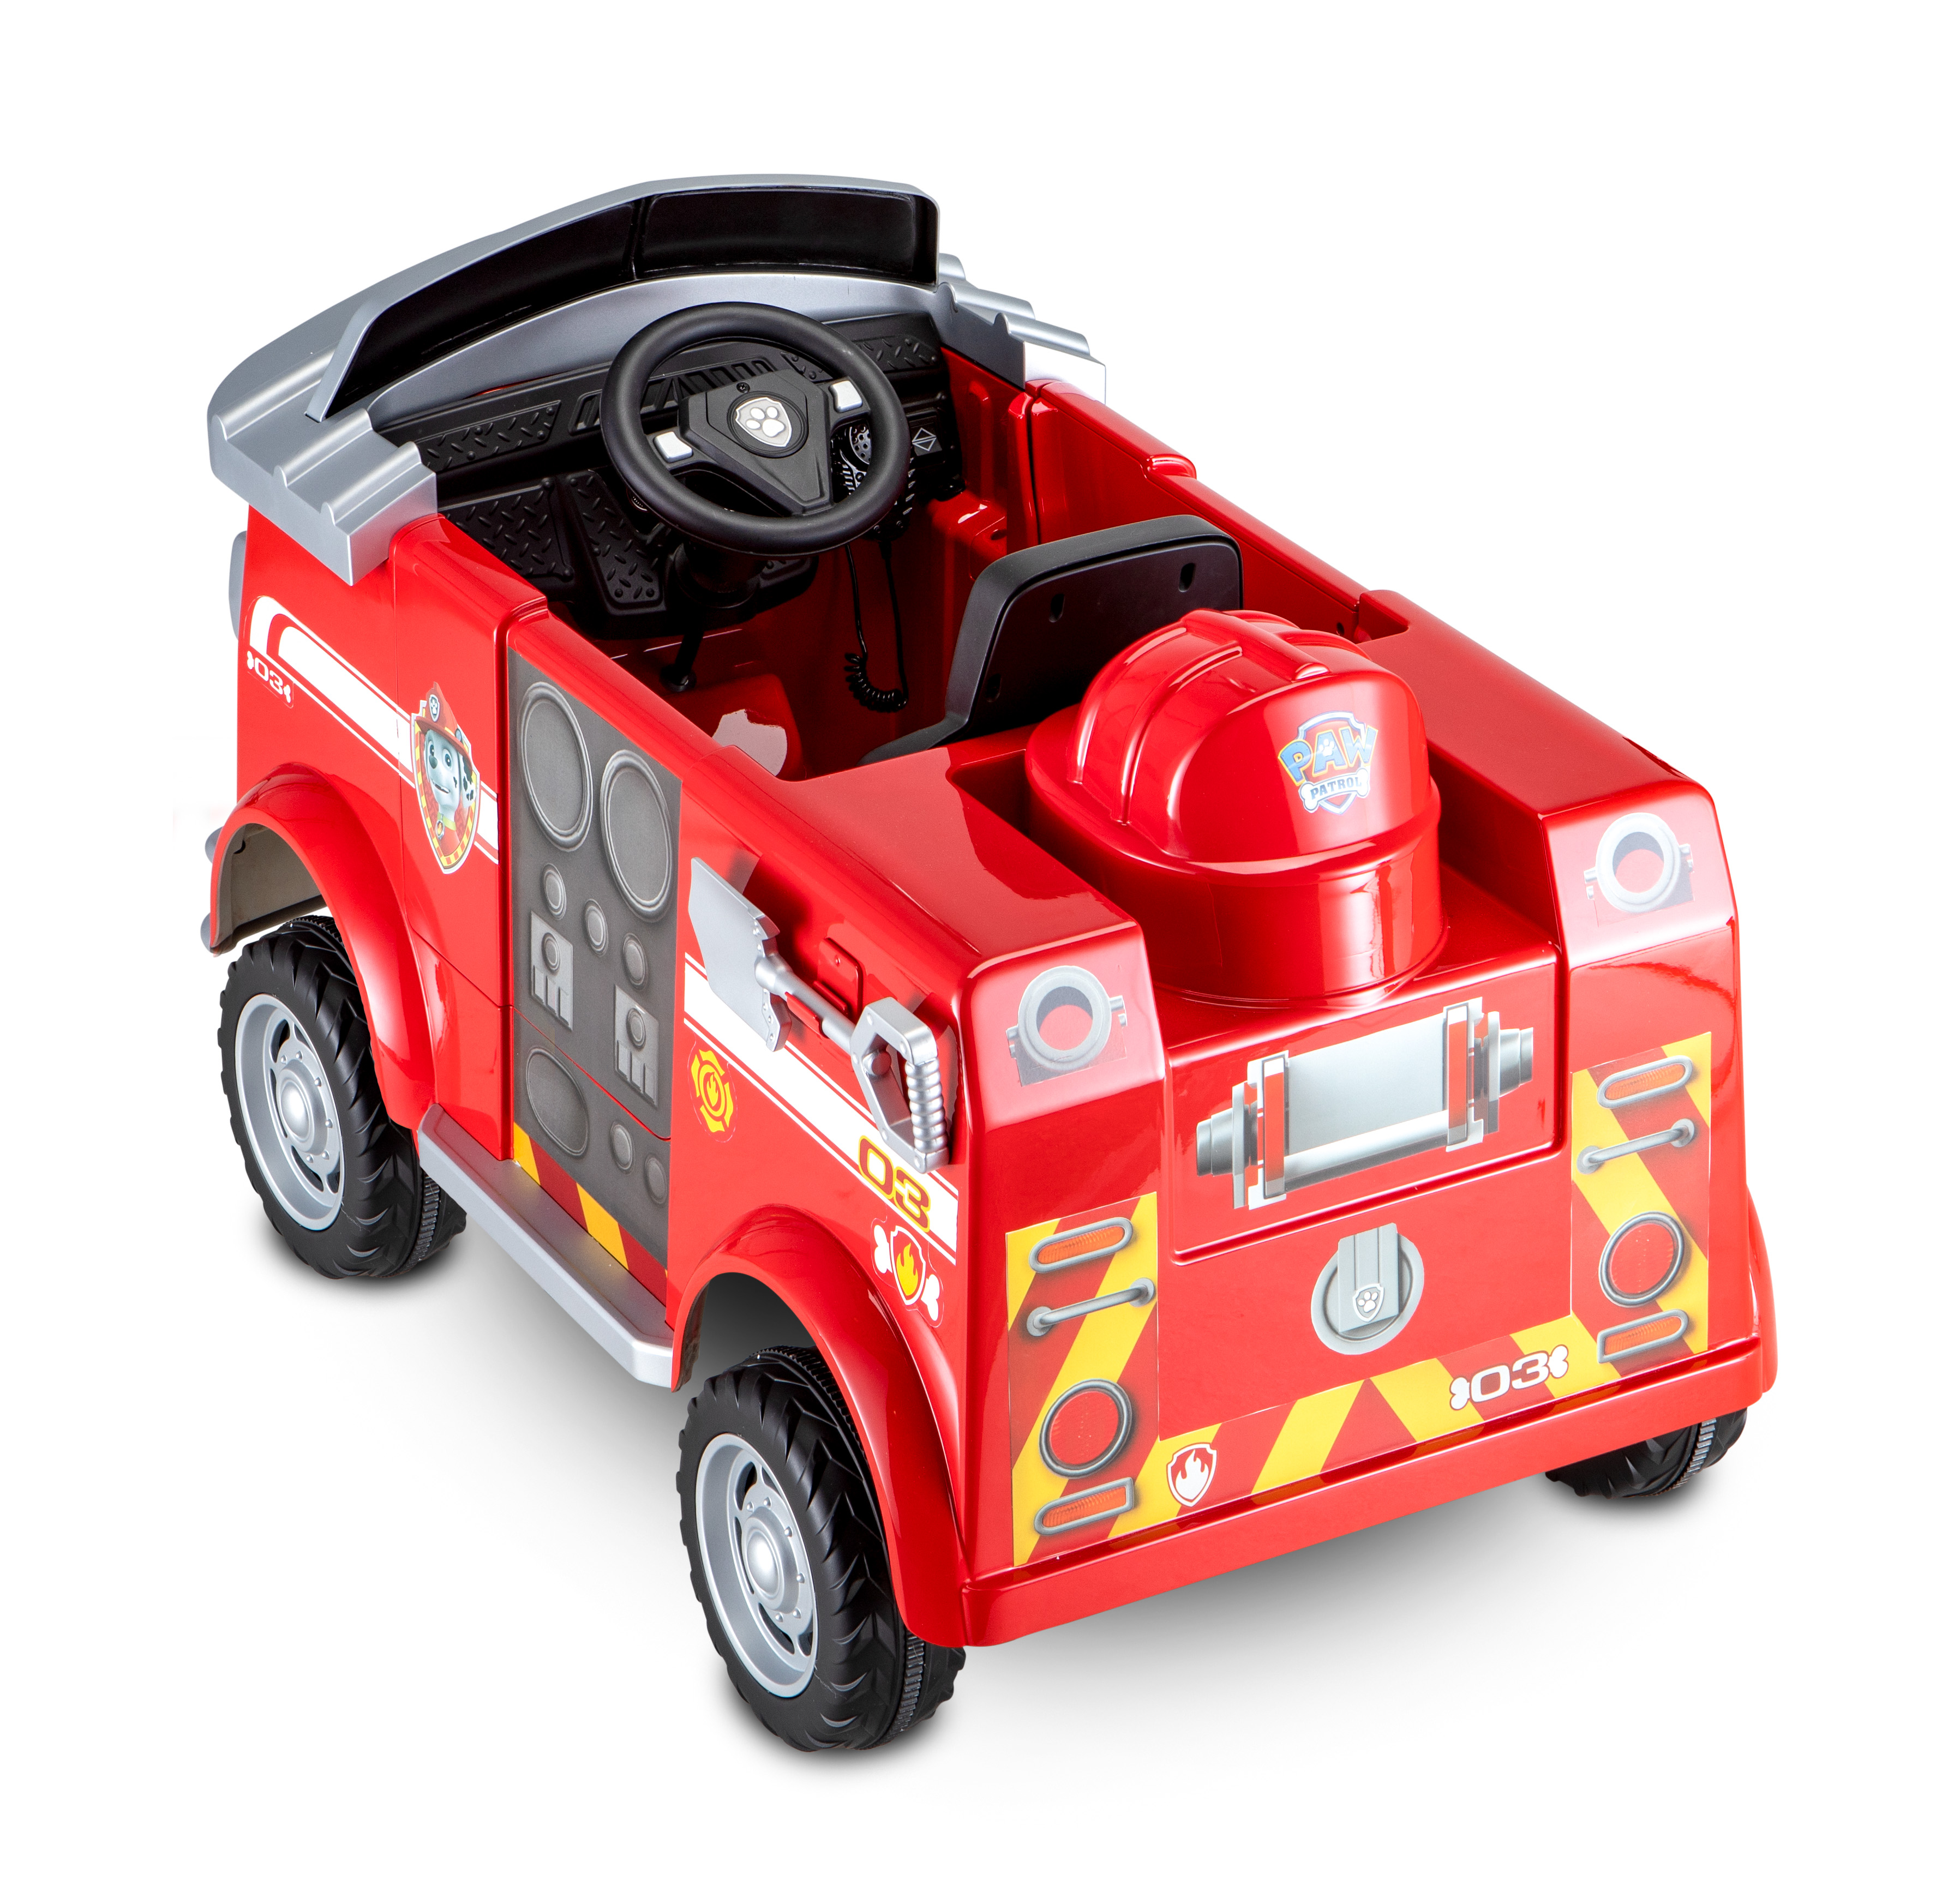 Paw Patrol Fire Truck 6 Volt powered Ride On Toy by Kid Trax